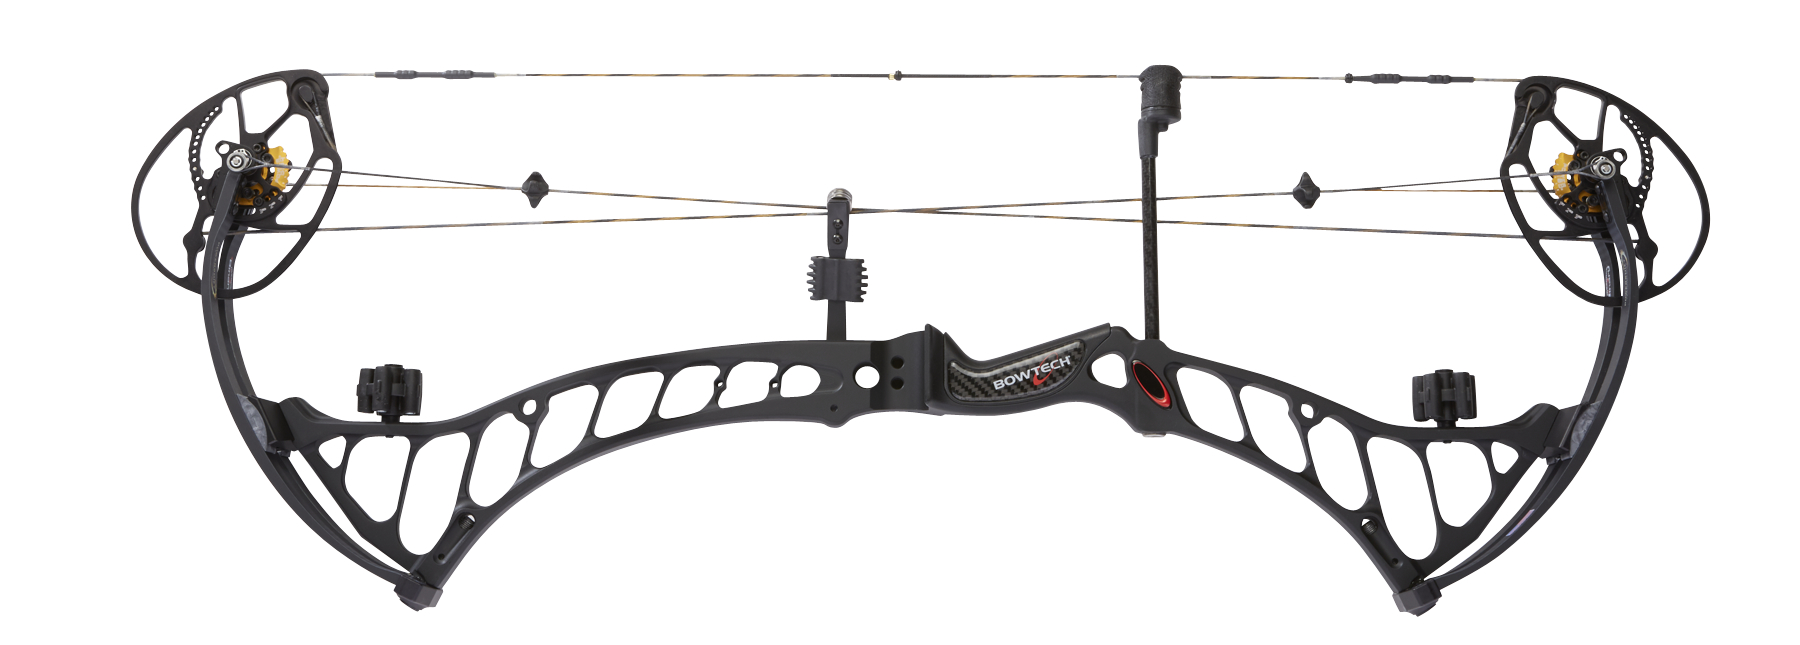 BOWTECH LAUNCHES REVOLUTIONARY POWERSHIFT TECHNOLOGY IN NEW PRODIGY BOW